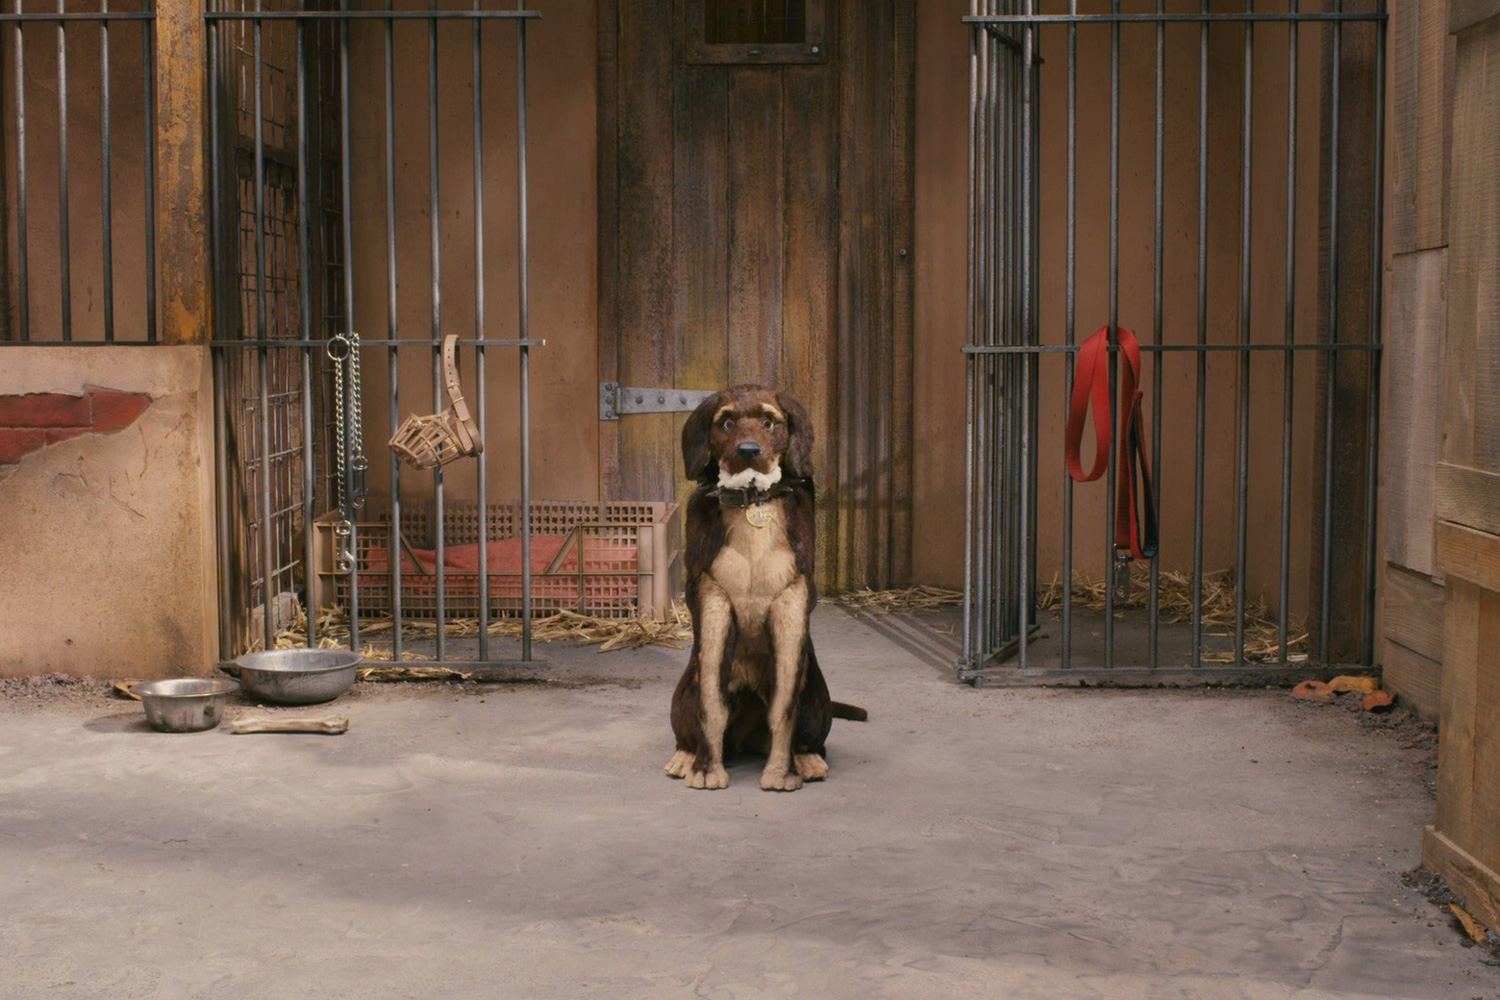 Wes Anderson Is Working on a Stop-Motion Film About Dogs